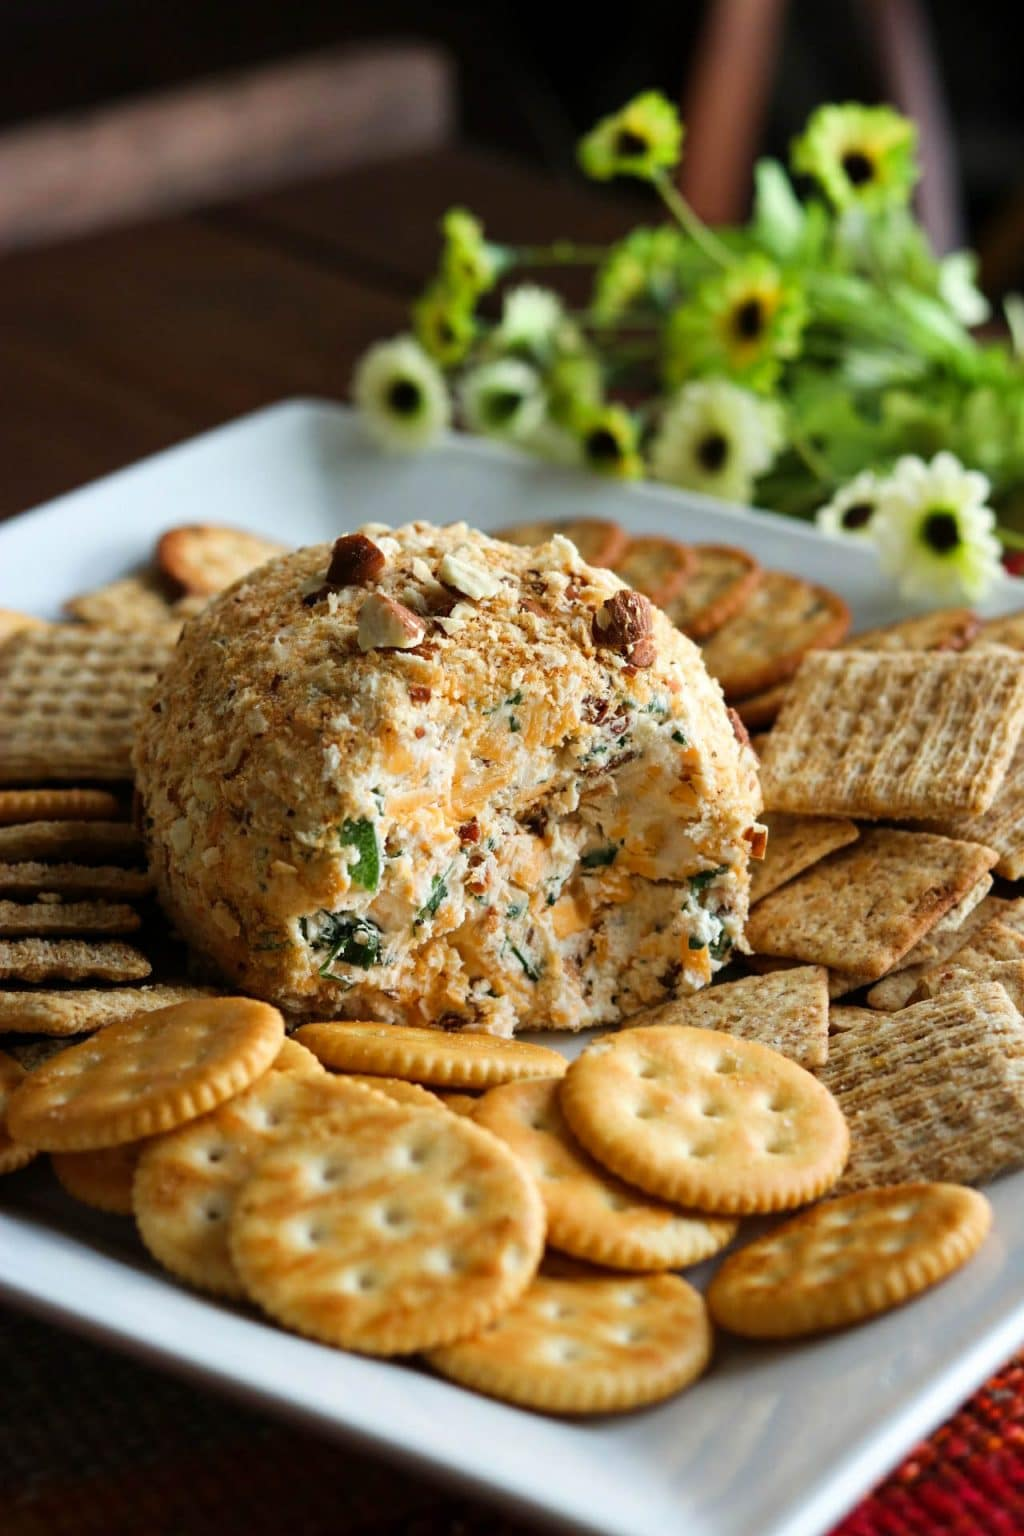 Jalapeno Popper Cheese Ball from Kylee Cooks